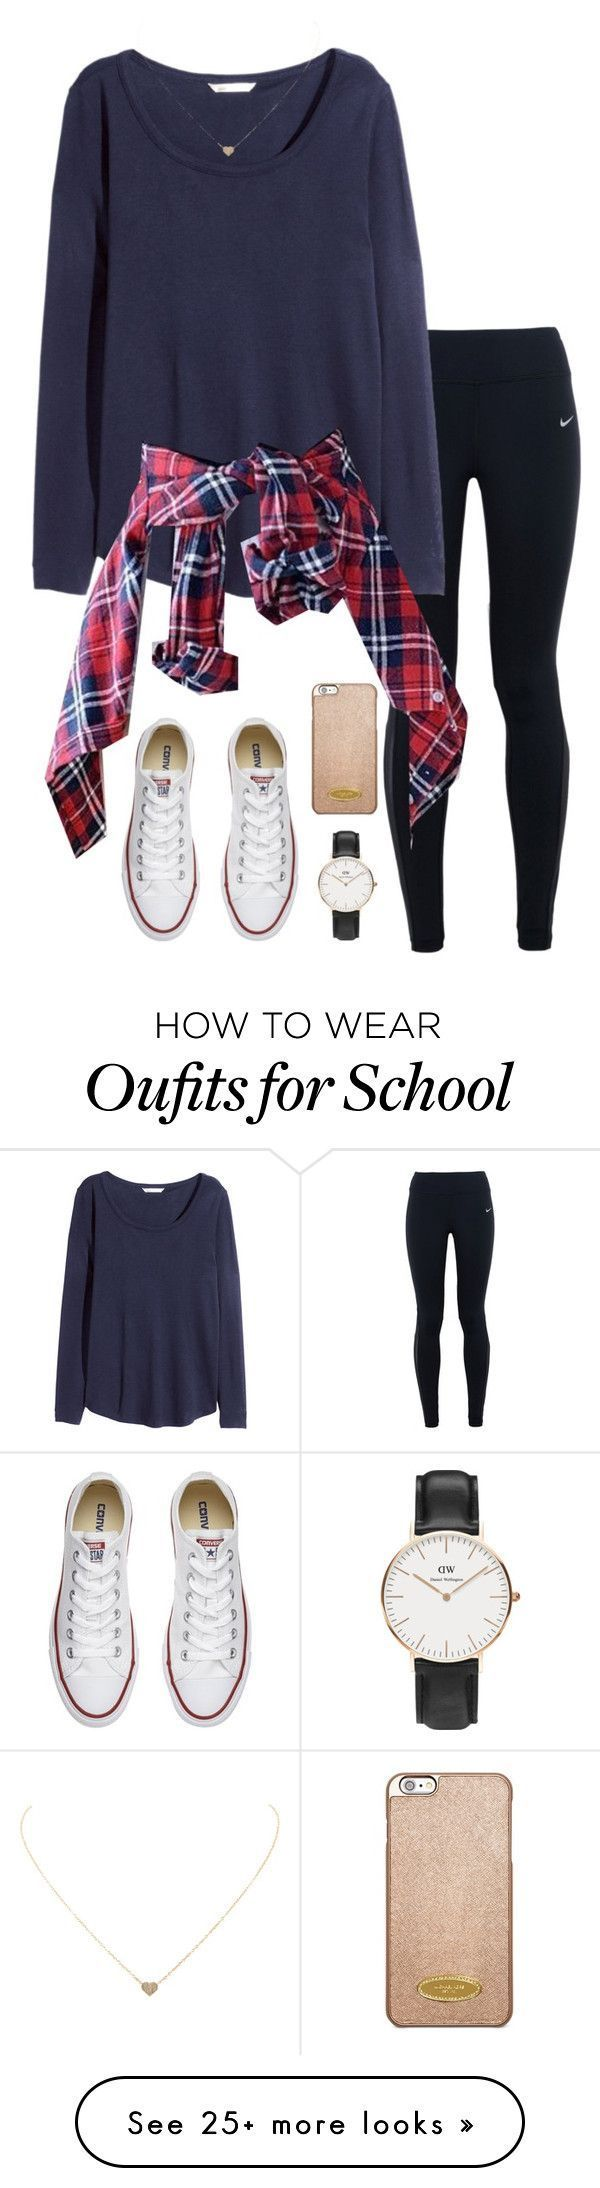 """I could not wear the leggings, but maybe black jeans - """"School t ..."""